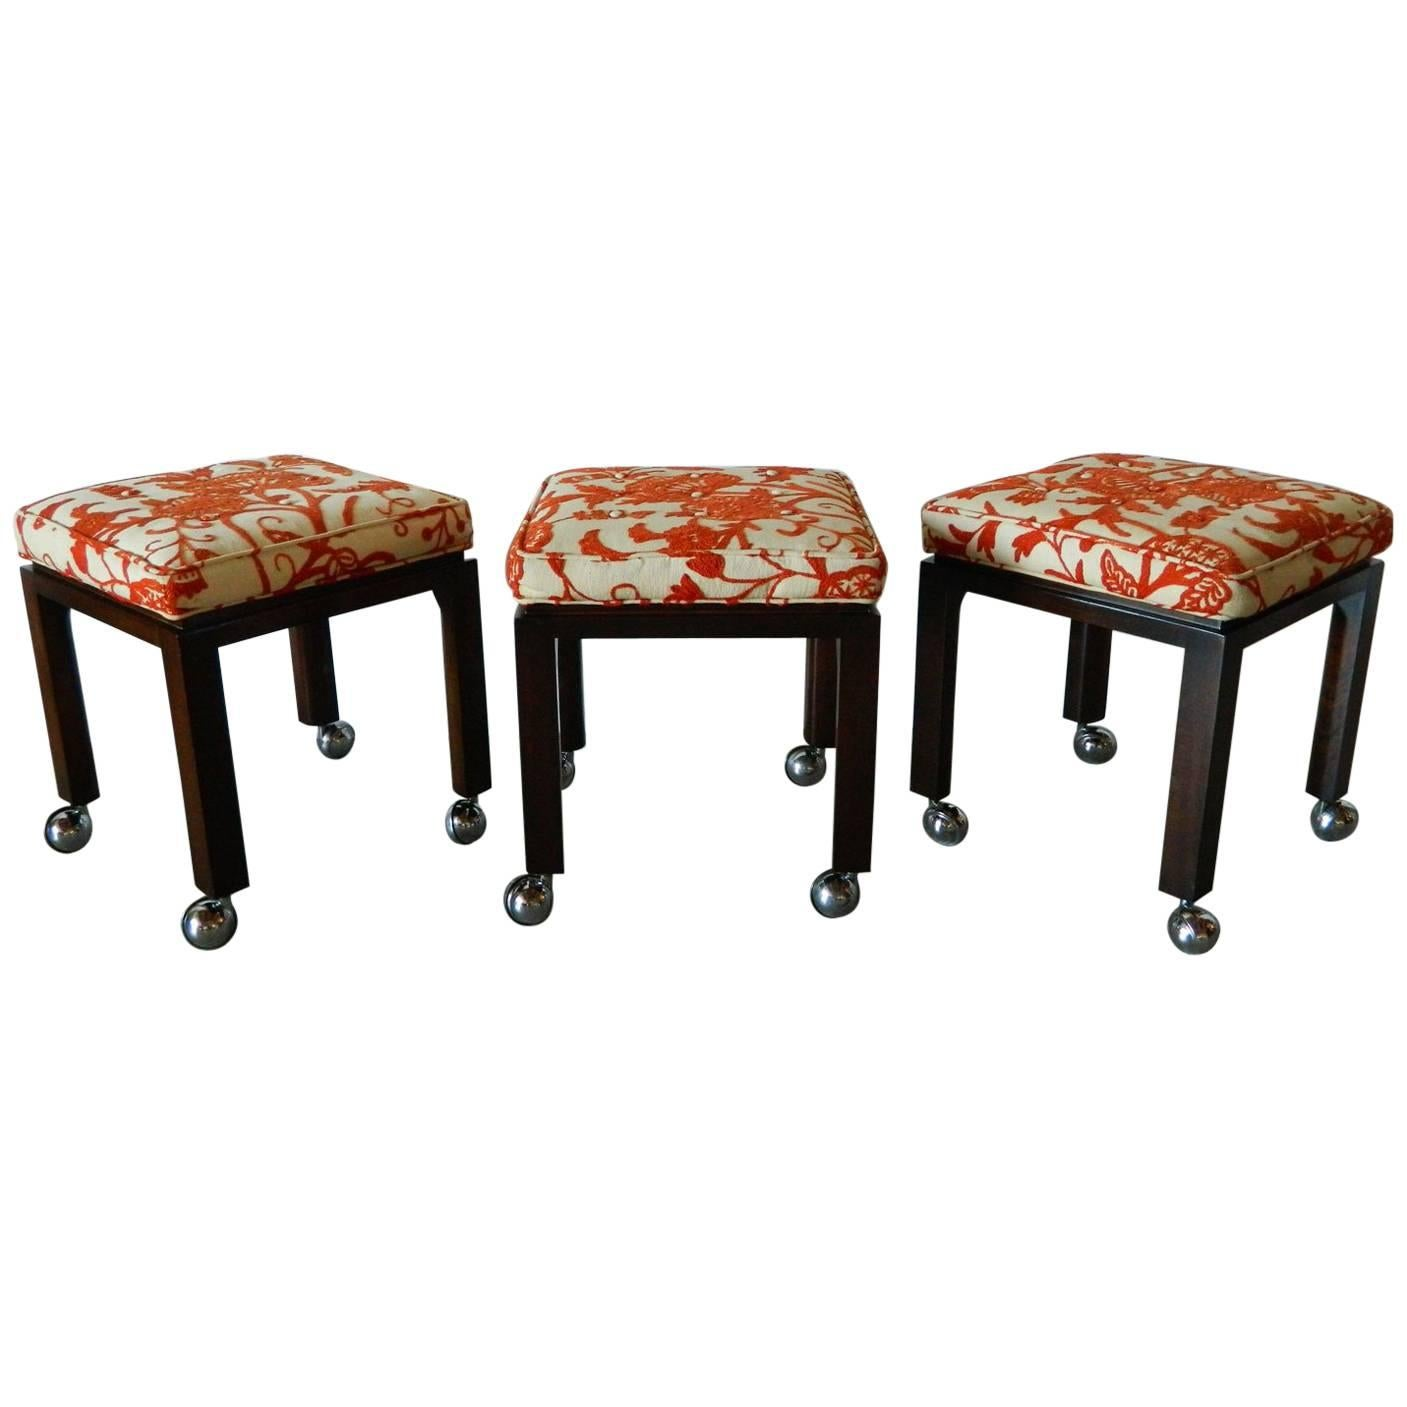 Beautiful Harvey Probber Stools For Sale Photo Gallery